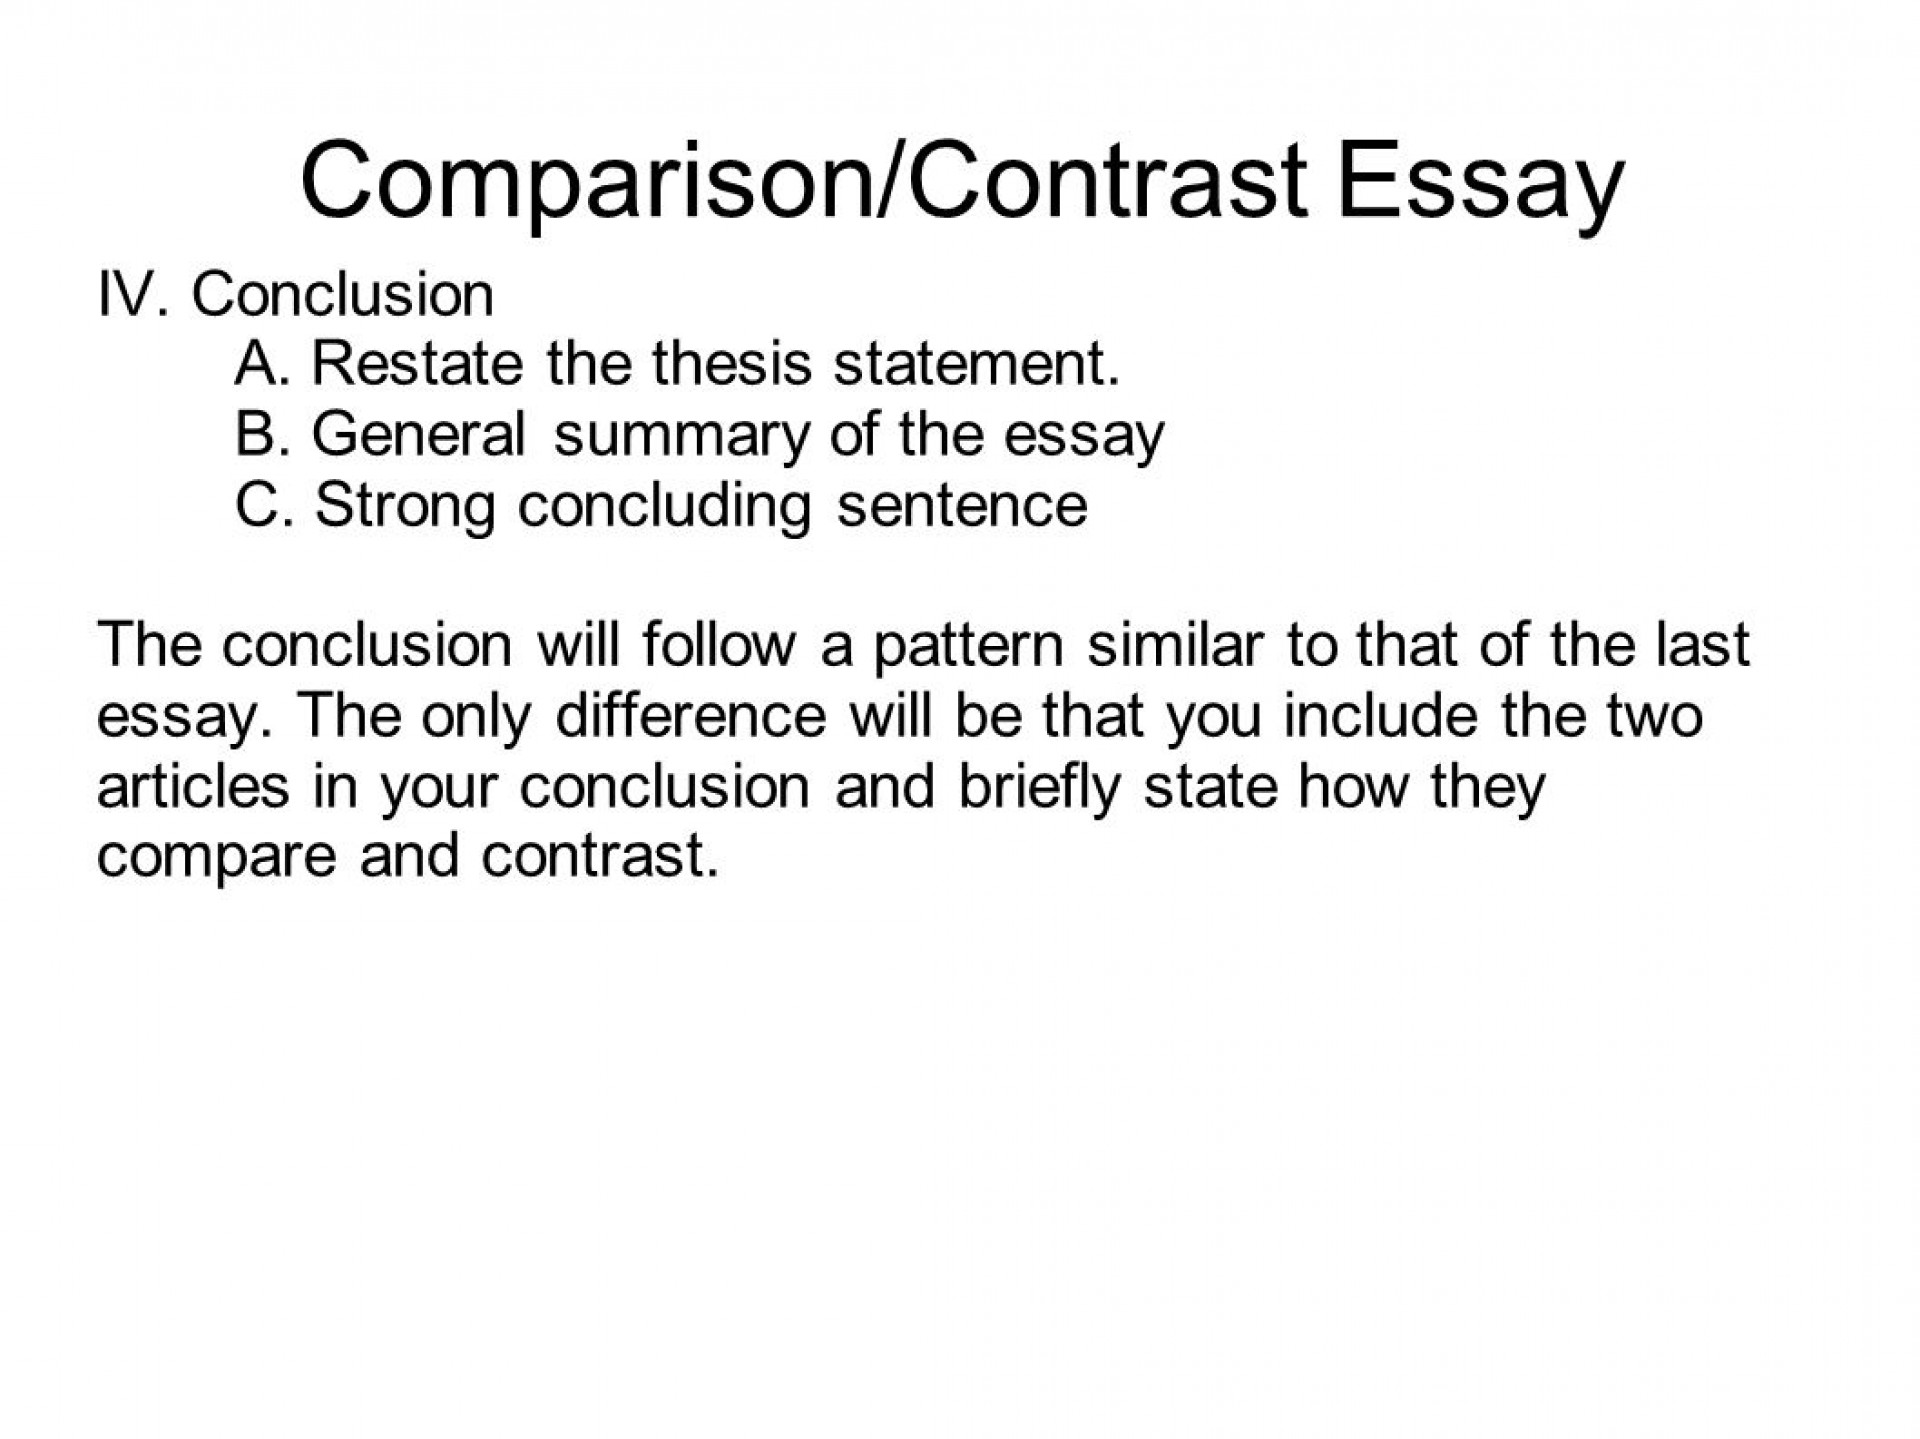 014 Argumentative Essay Conclusion Abortion Paragraph For Compared Sli Samples Example How To Write Incredible Format Sample 1920